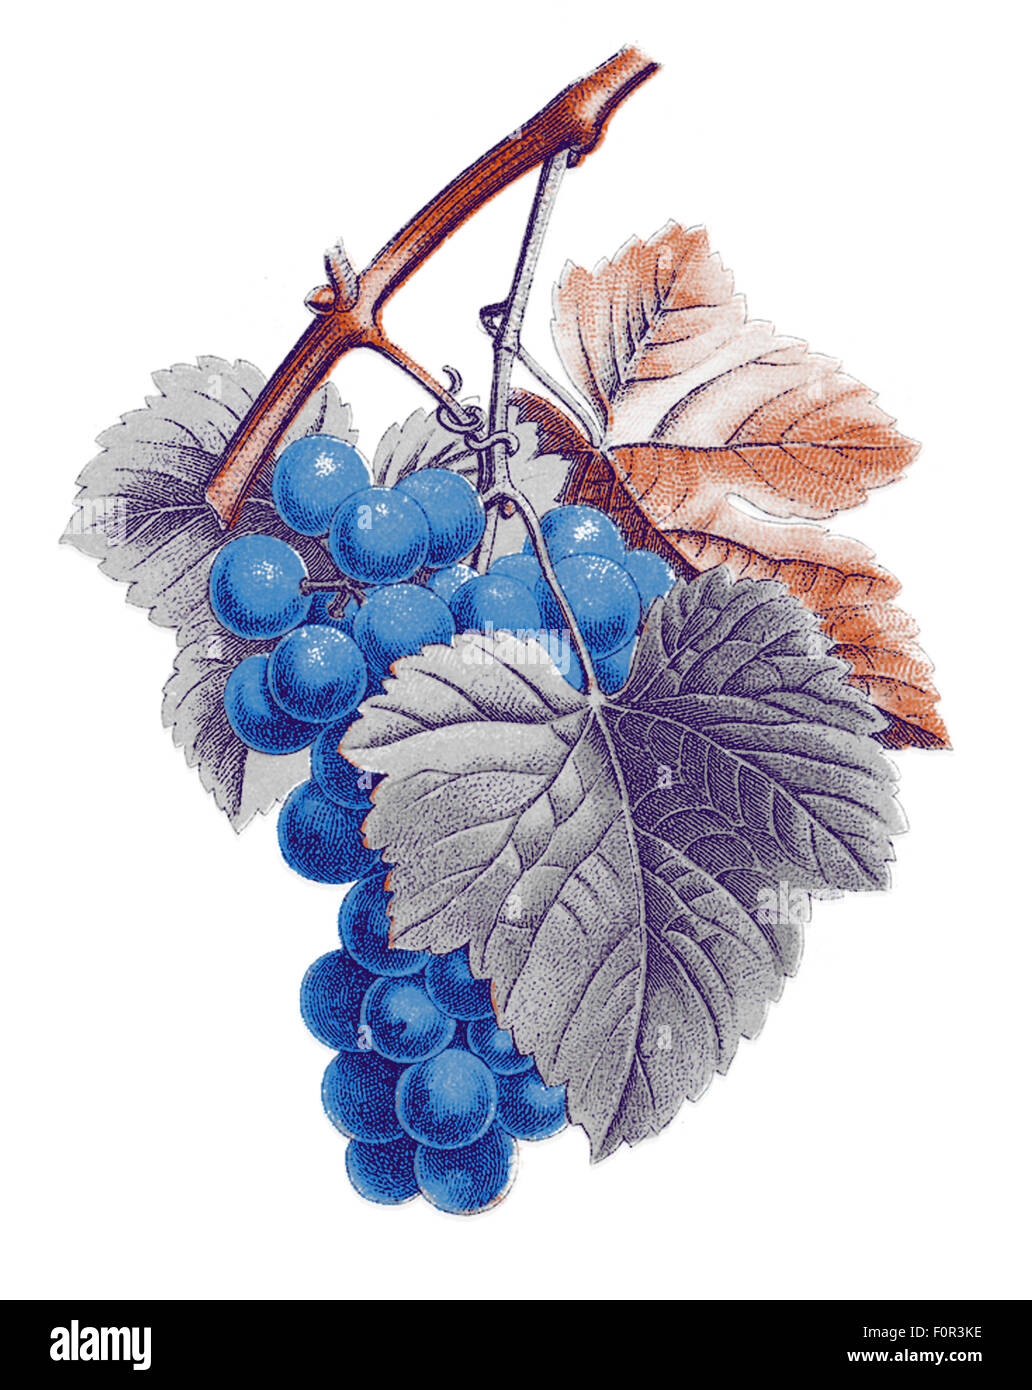 digital illustration based on an ancient botanical specimen (vitis vinifera) and treated as lithography in four - Stock Image